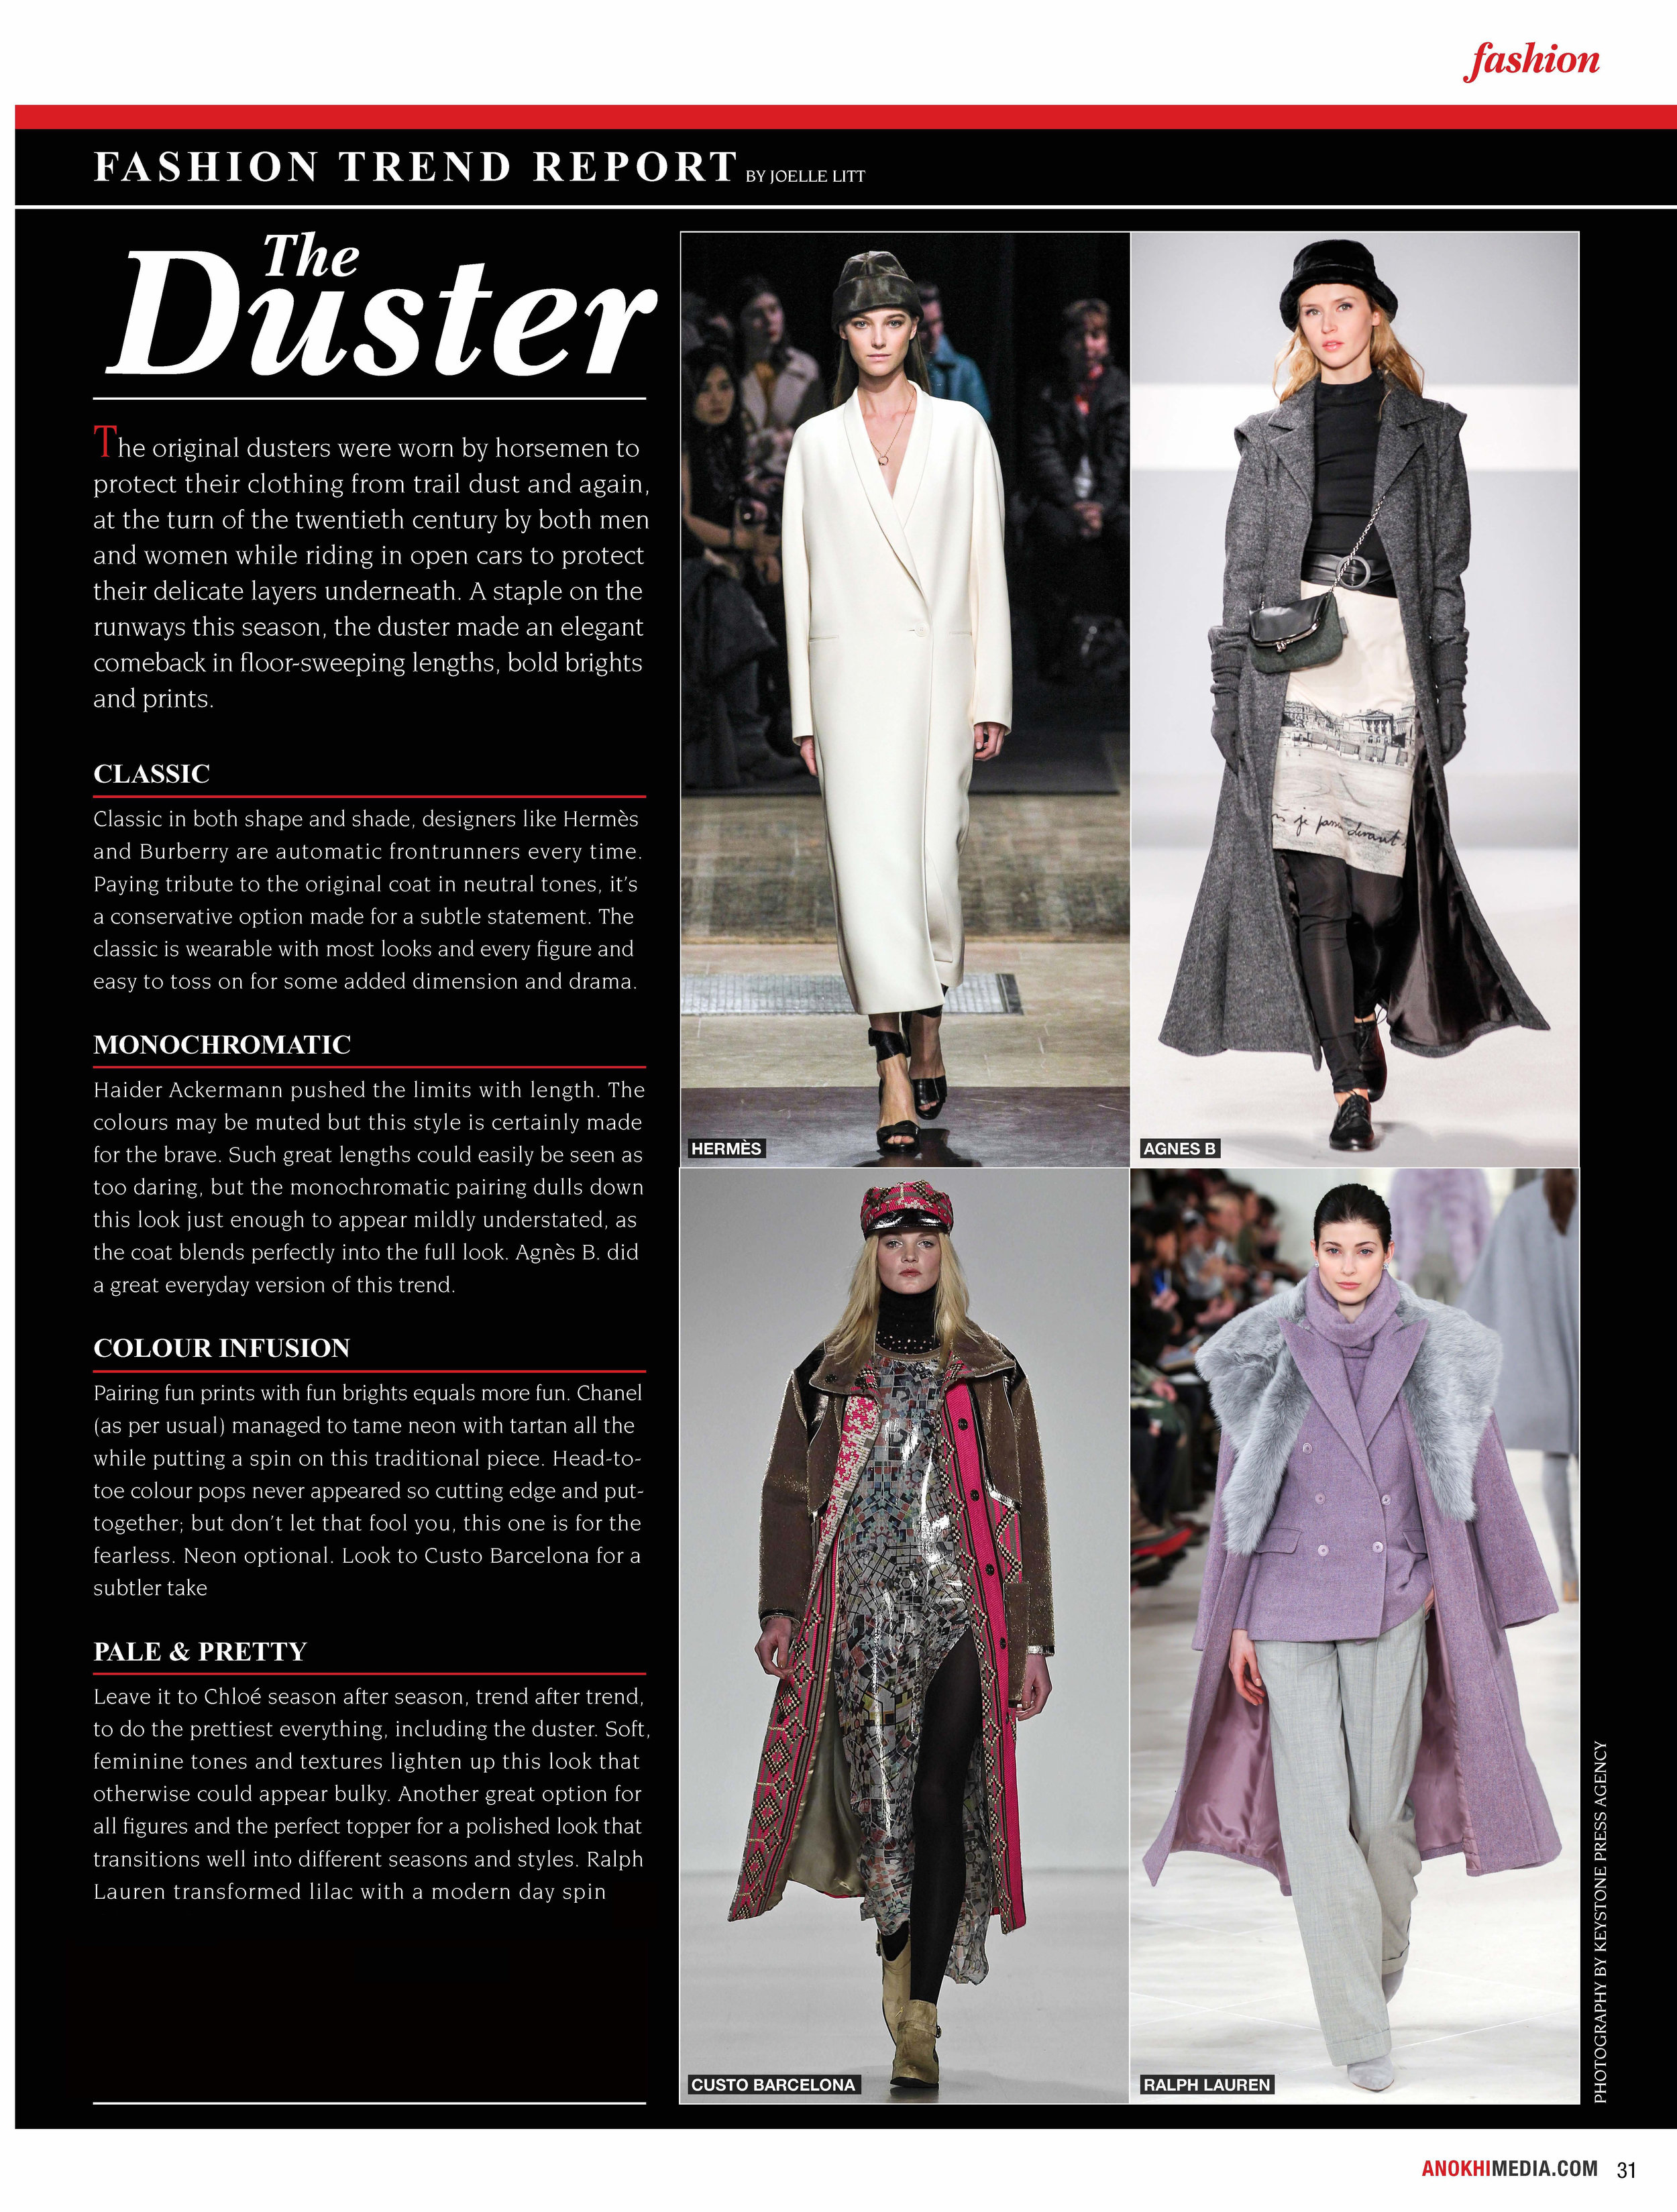 DEC 11TH JAN 2015 FASHION JOELLE_Page_2 copy.jpg